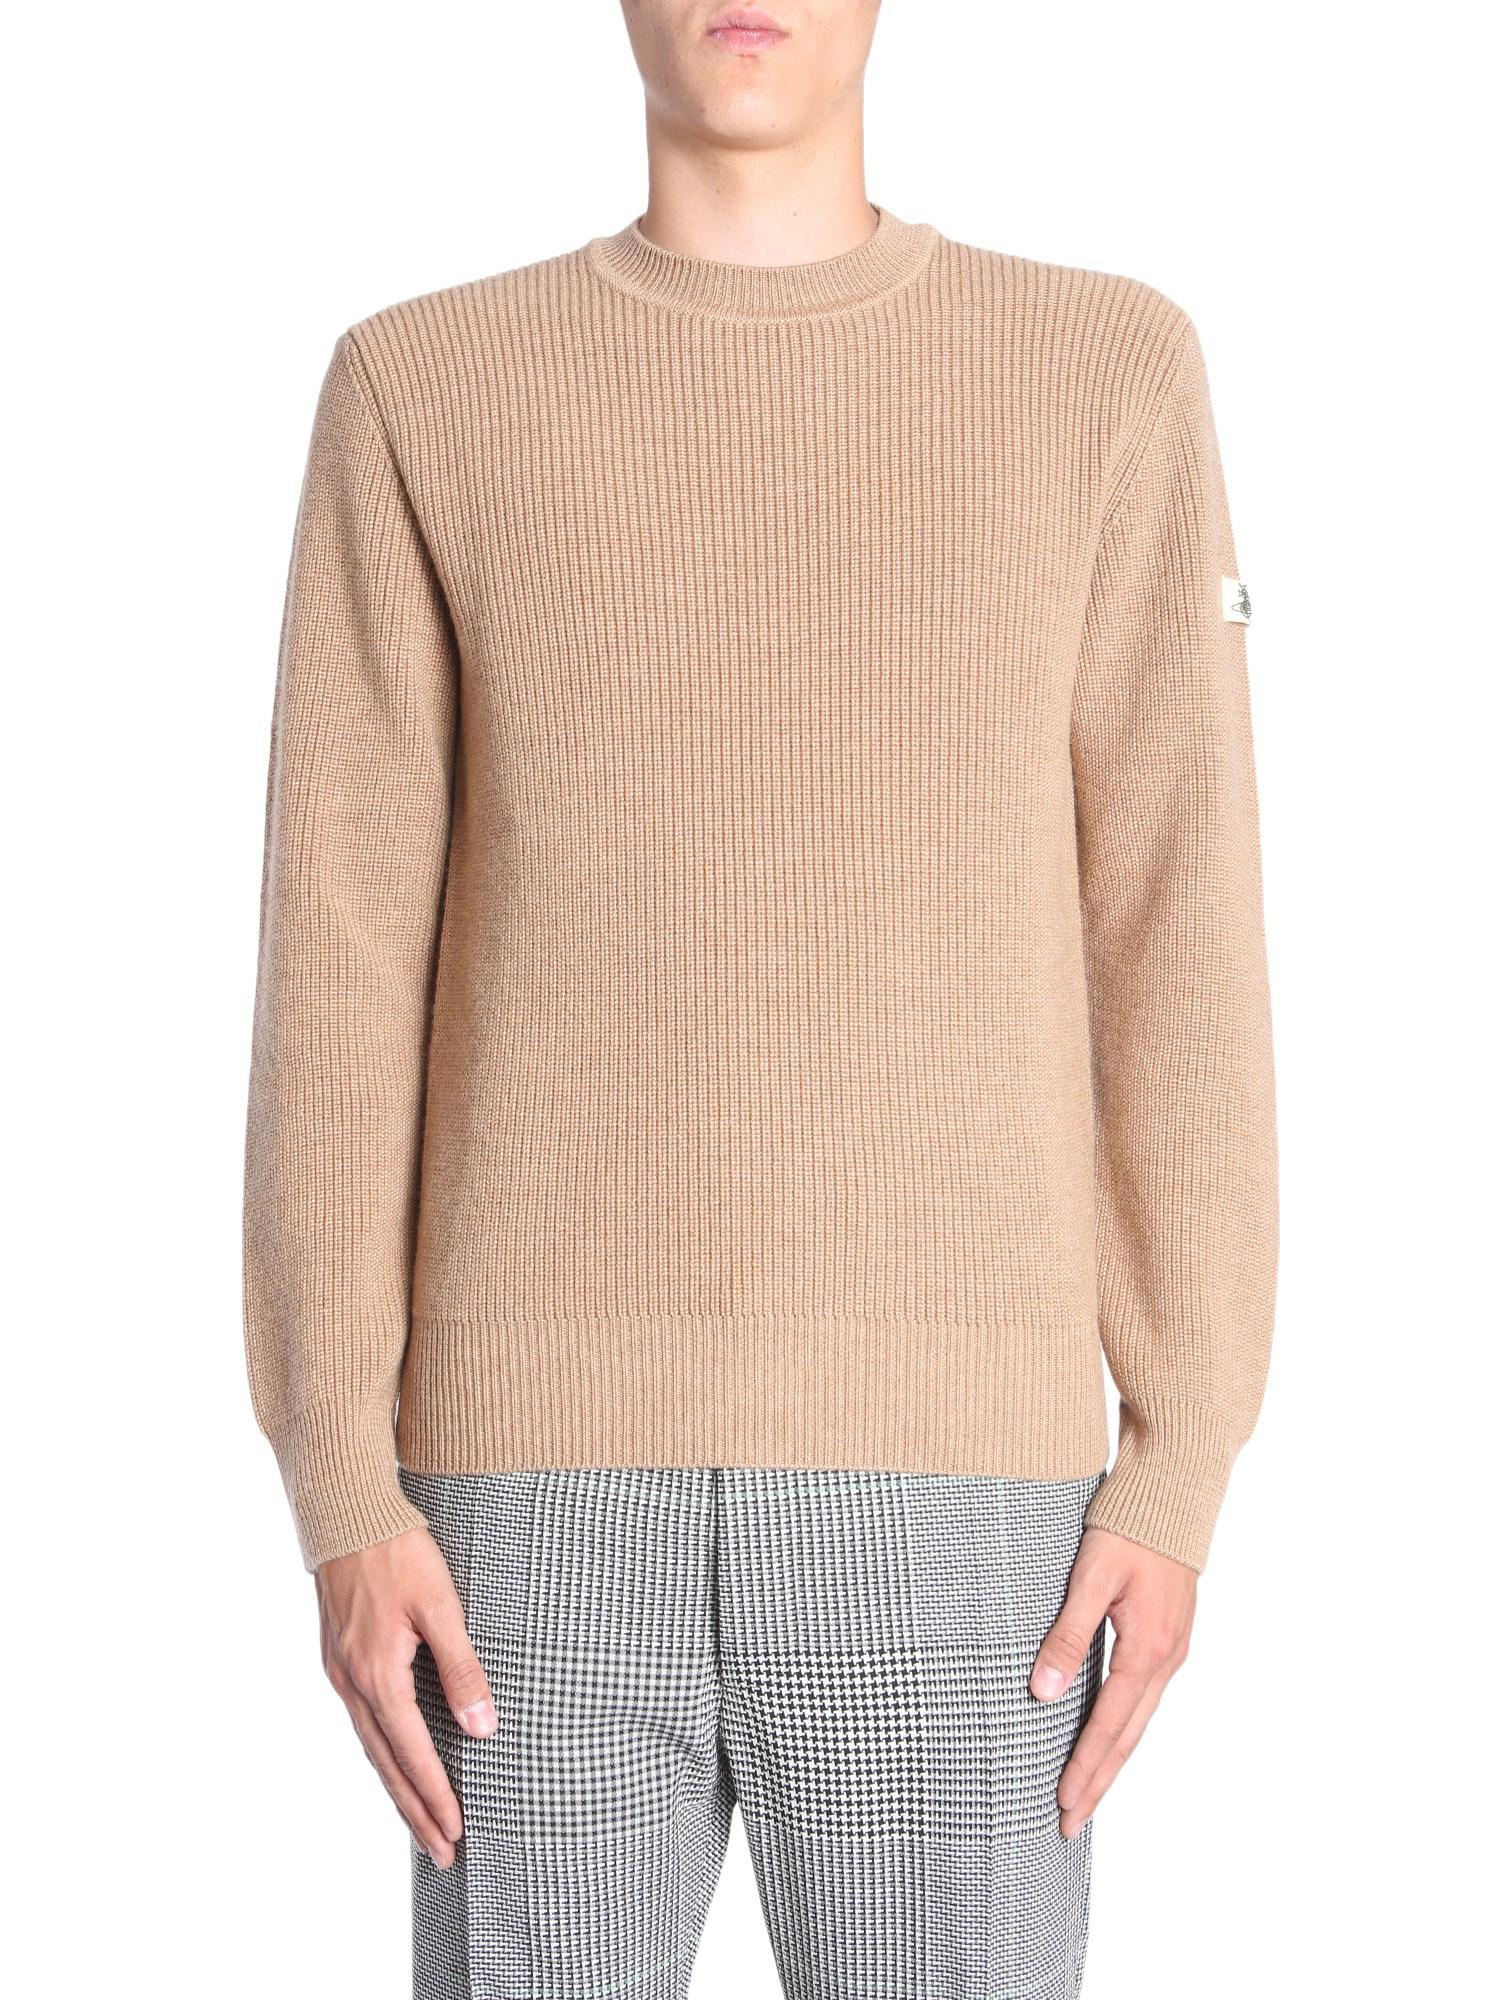 adc5518067f23 Vivienne Westwood - Natural Round Collar Wool Jumper for Men - Lyst. View  fullscreen